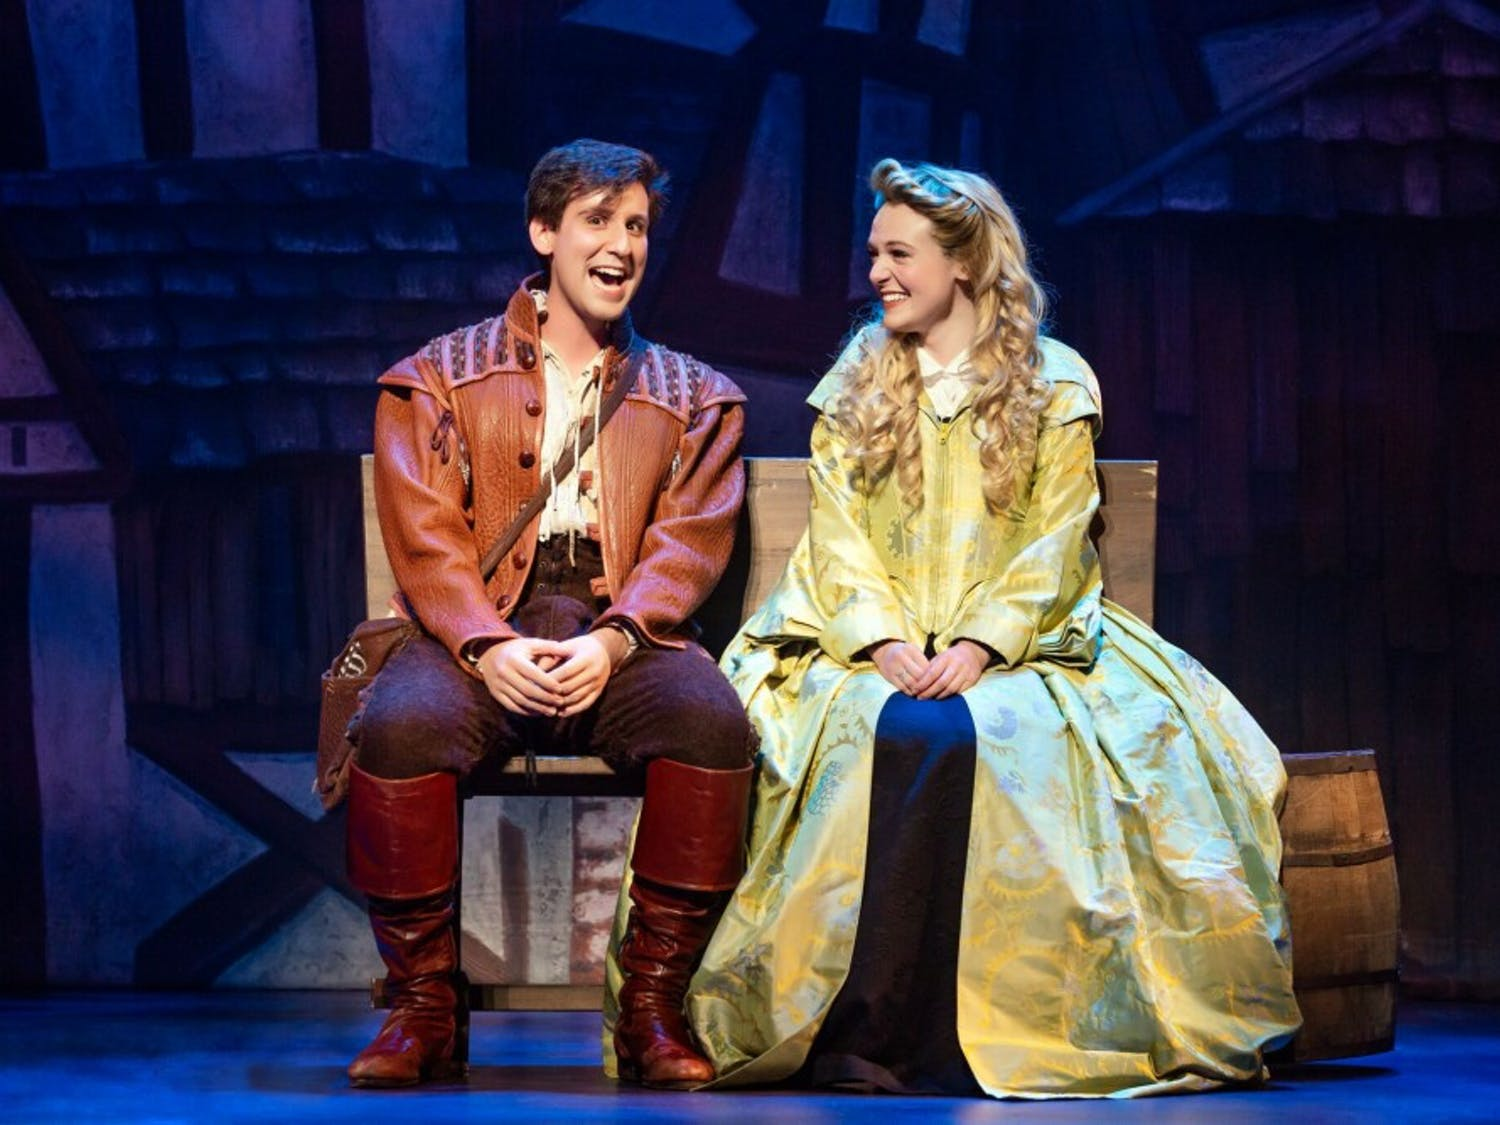 Spitaletta, pictured above with co-star Jennifer Elizabeth Smith, leads the touring cast of the Broadway musical.